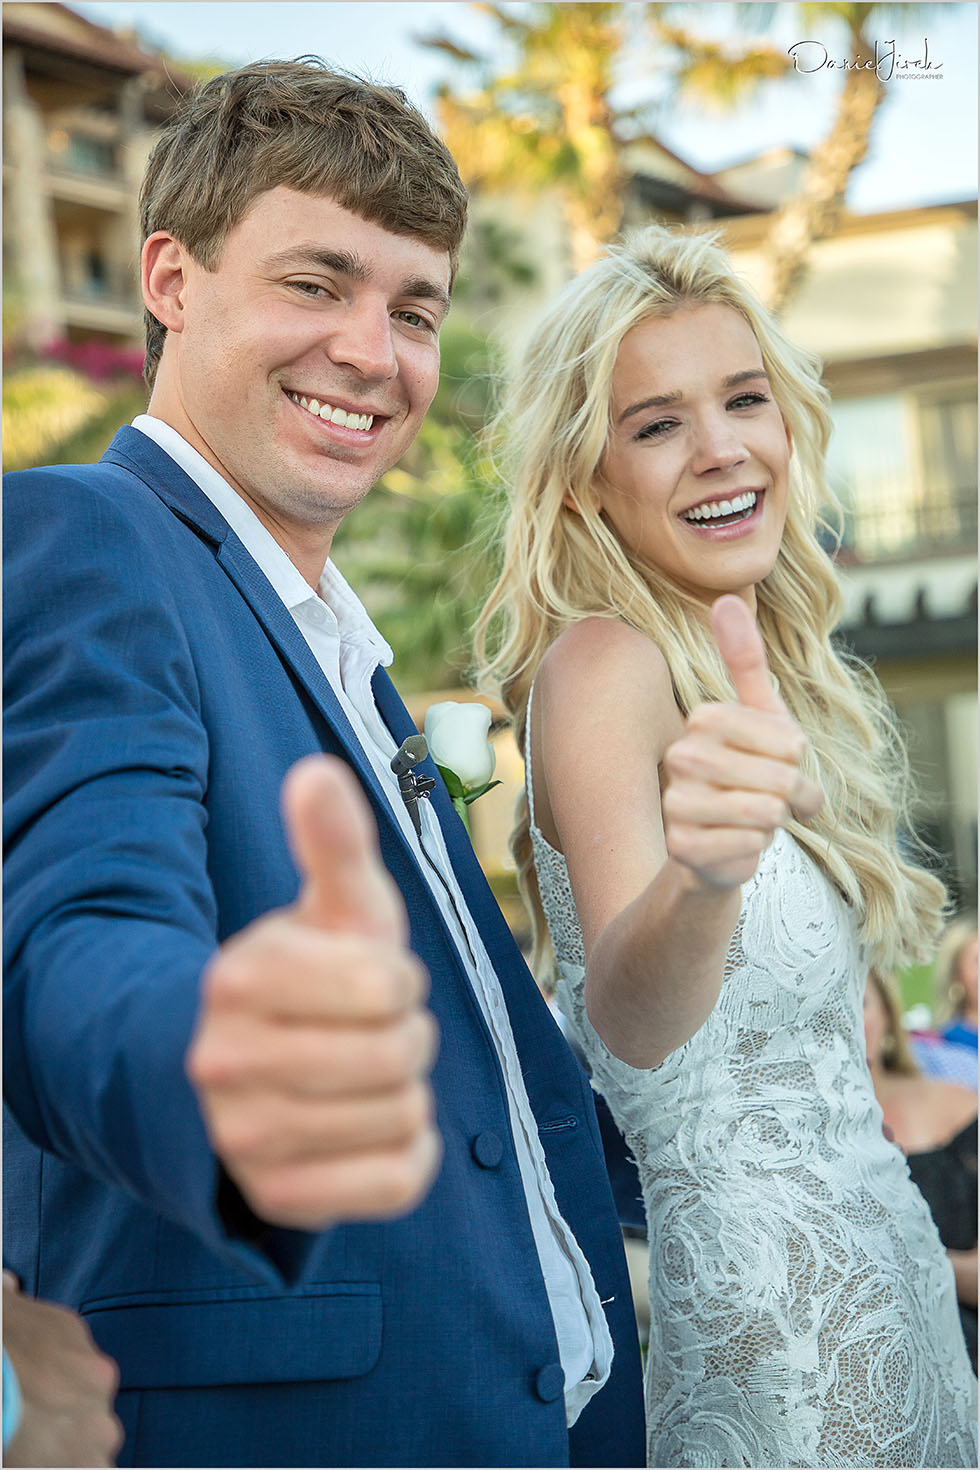 bride and groom give thumbs up